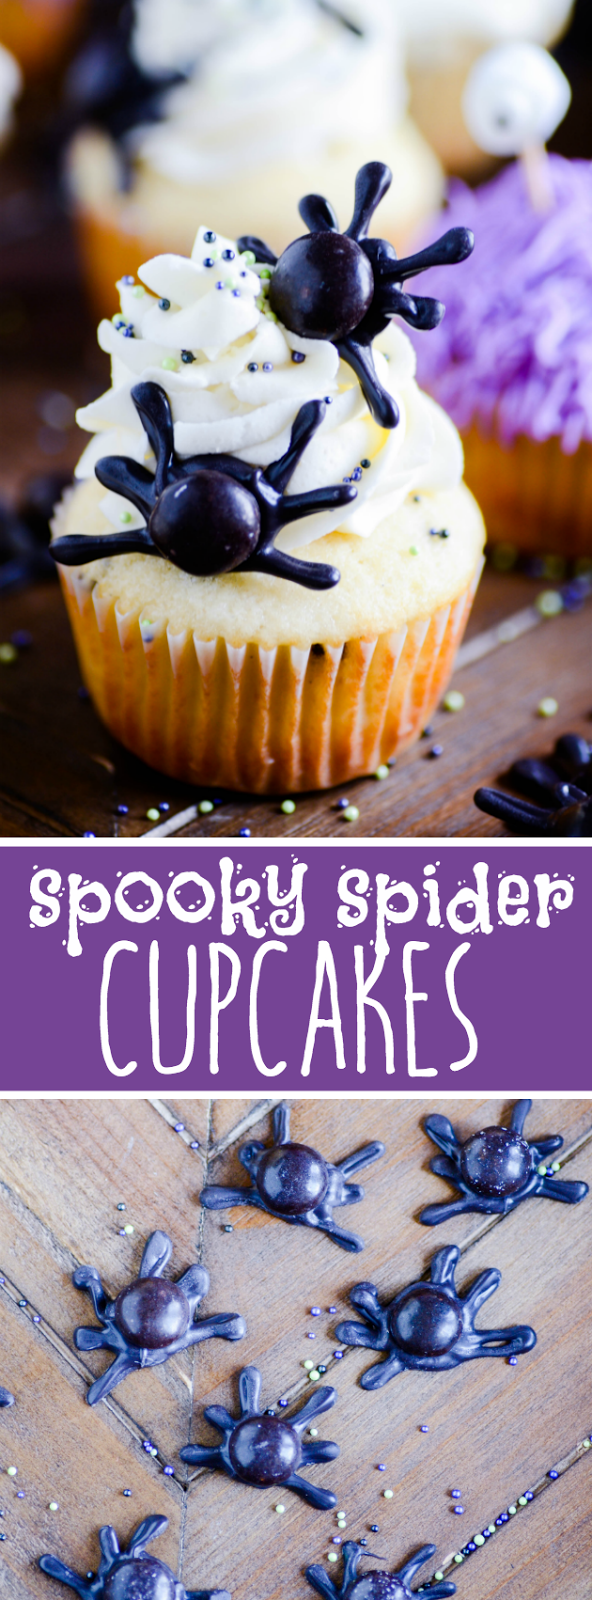 These spooky Halloween cupcakes are CRAZY EASY and eerily delicious. Grab a bag of cookies & cream M&Ms to make our easy edible black widow spiders!